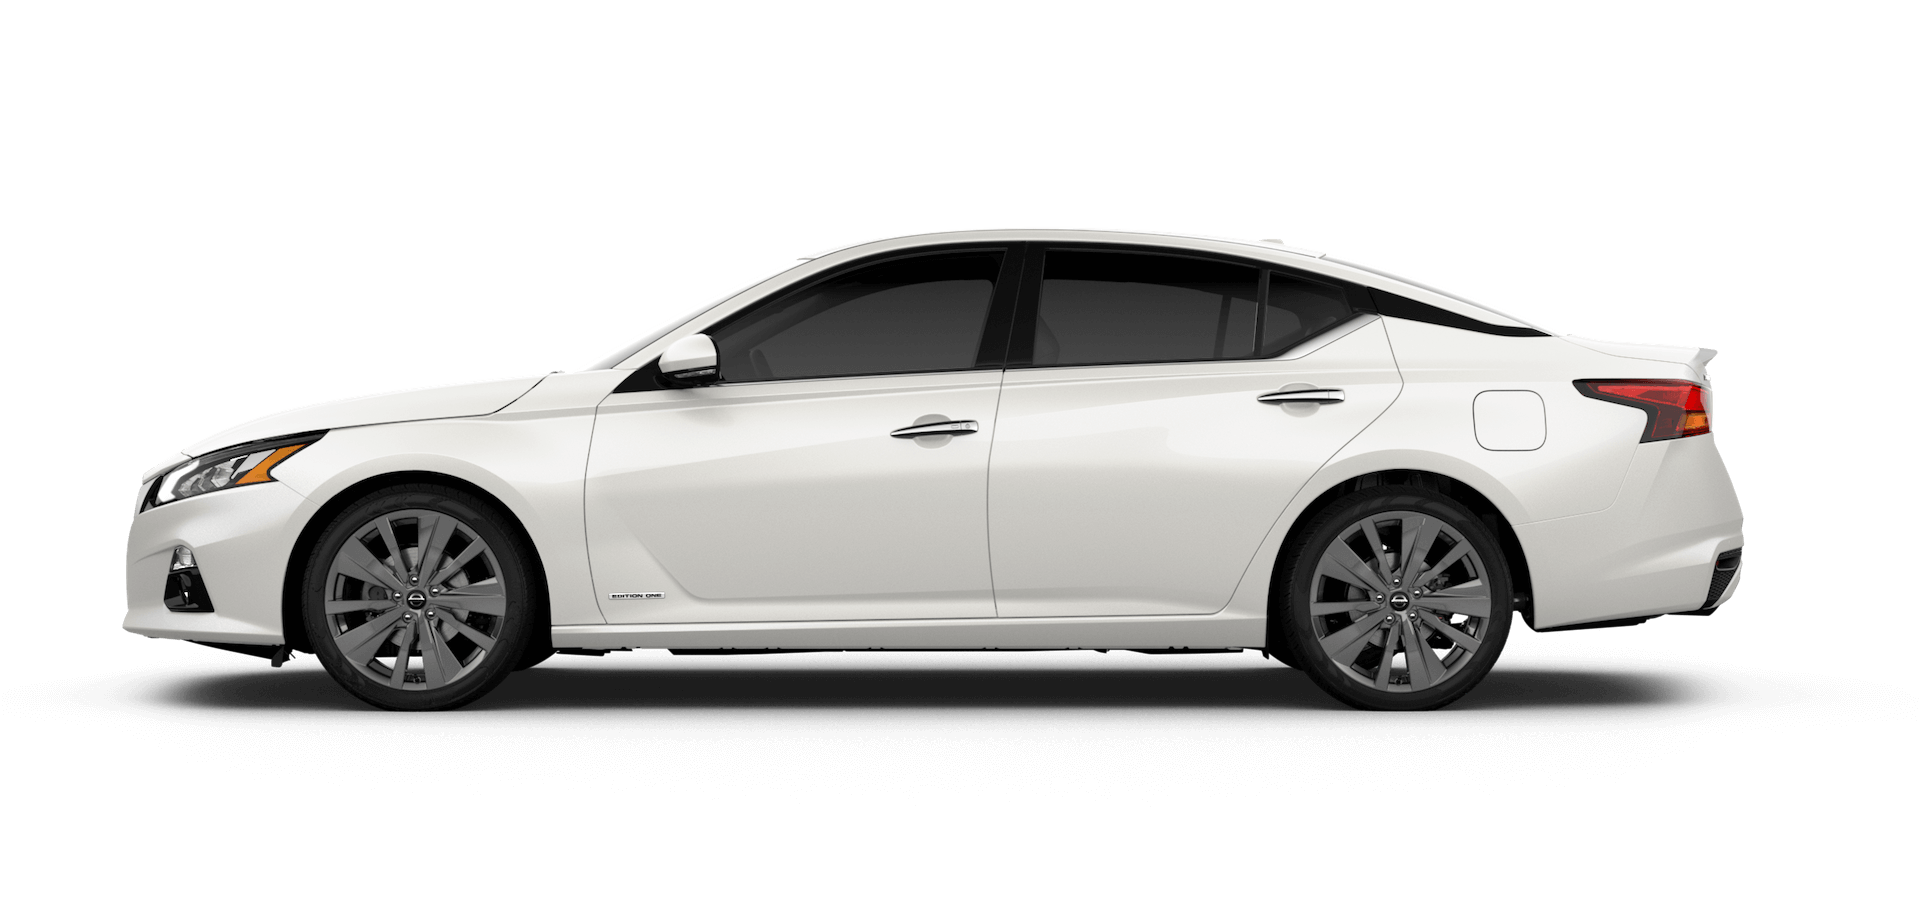 Altima Edition One VC-Turbo Pearl White